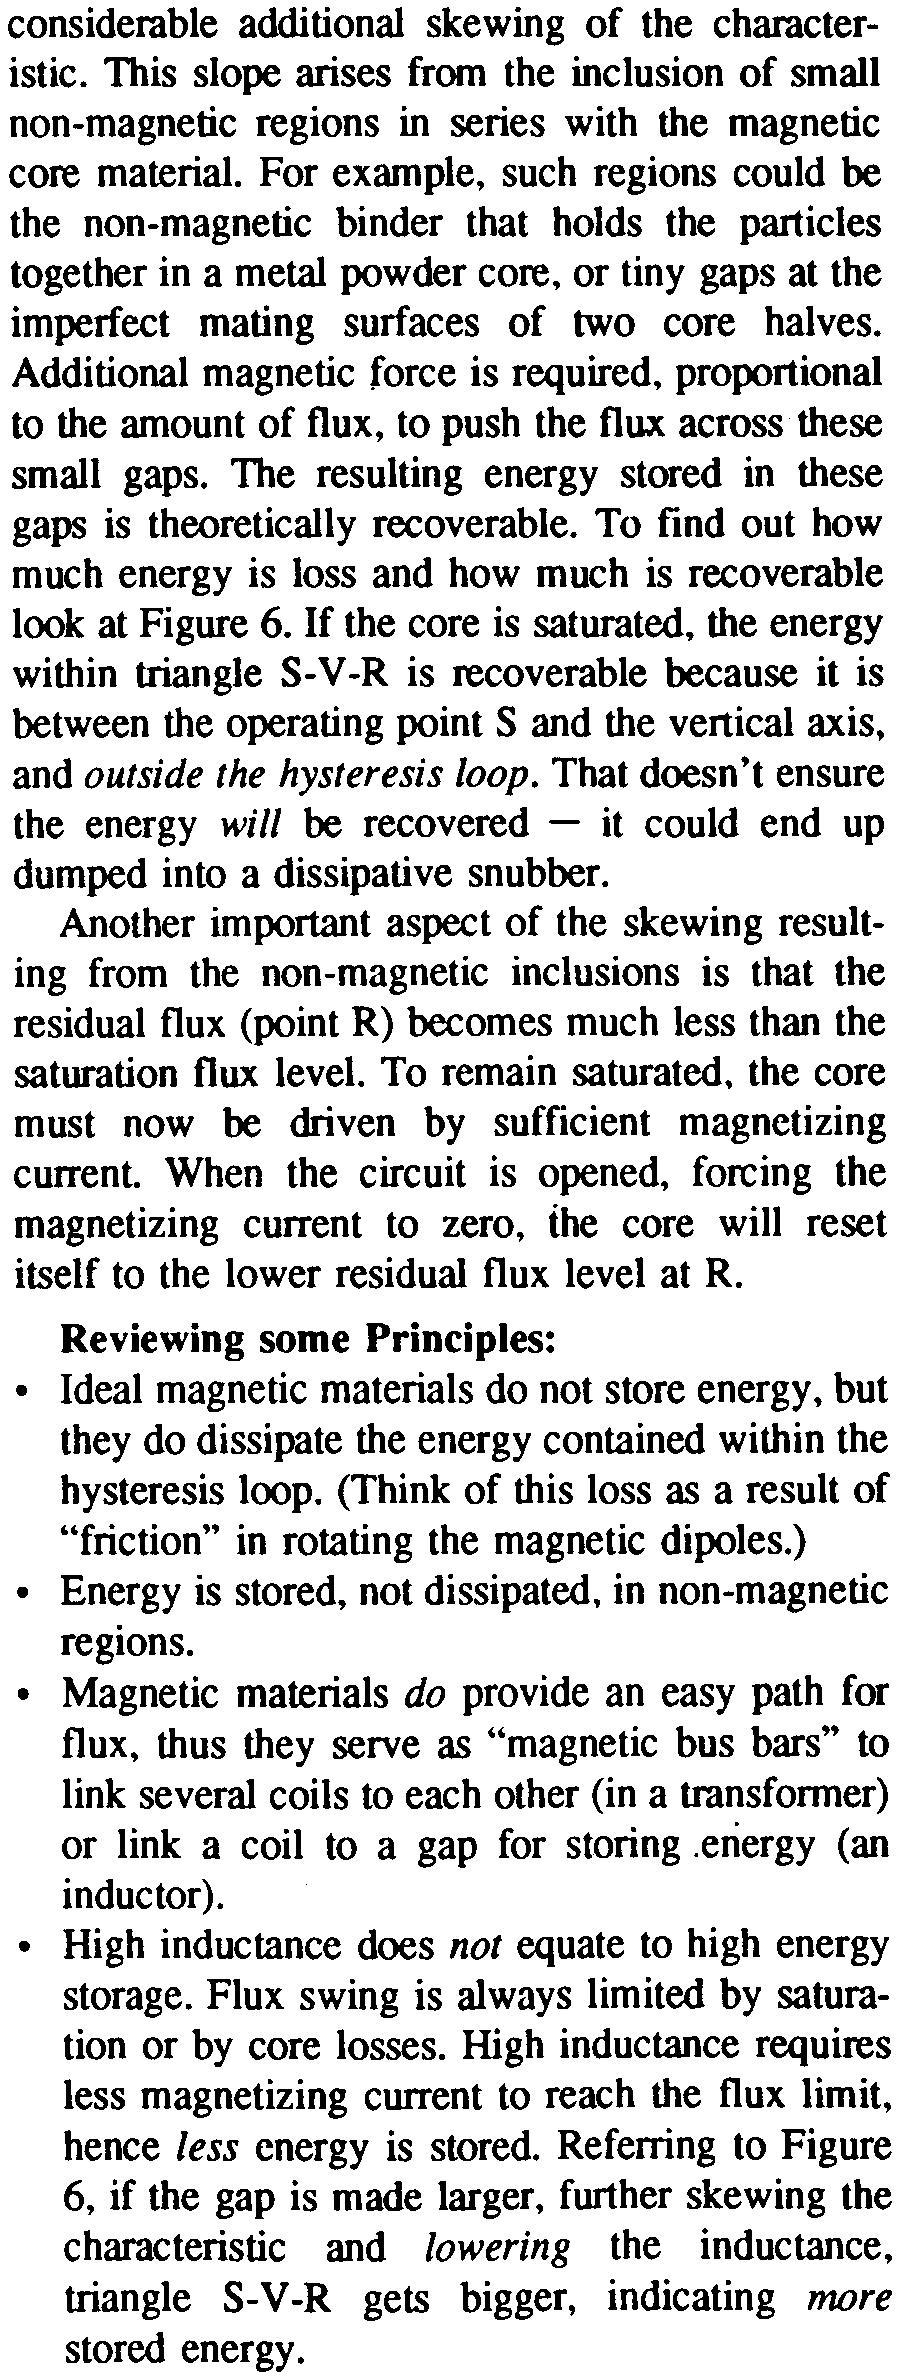 Magnetics Design For Switching Power Supplies Lloyd H Dixon Pdf Magnetic Circuit Of An Inductor With Ungapped Core The Entire Is Always Saturated But Inner Portion In New